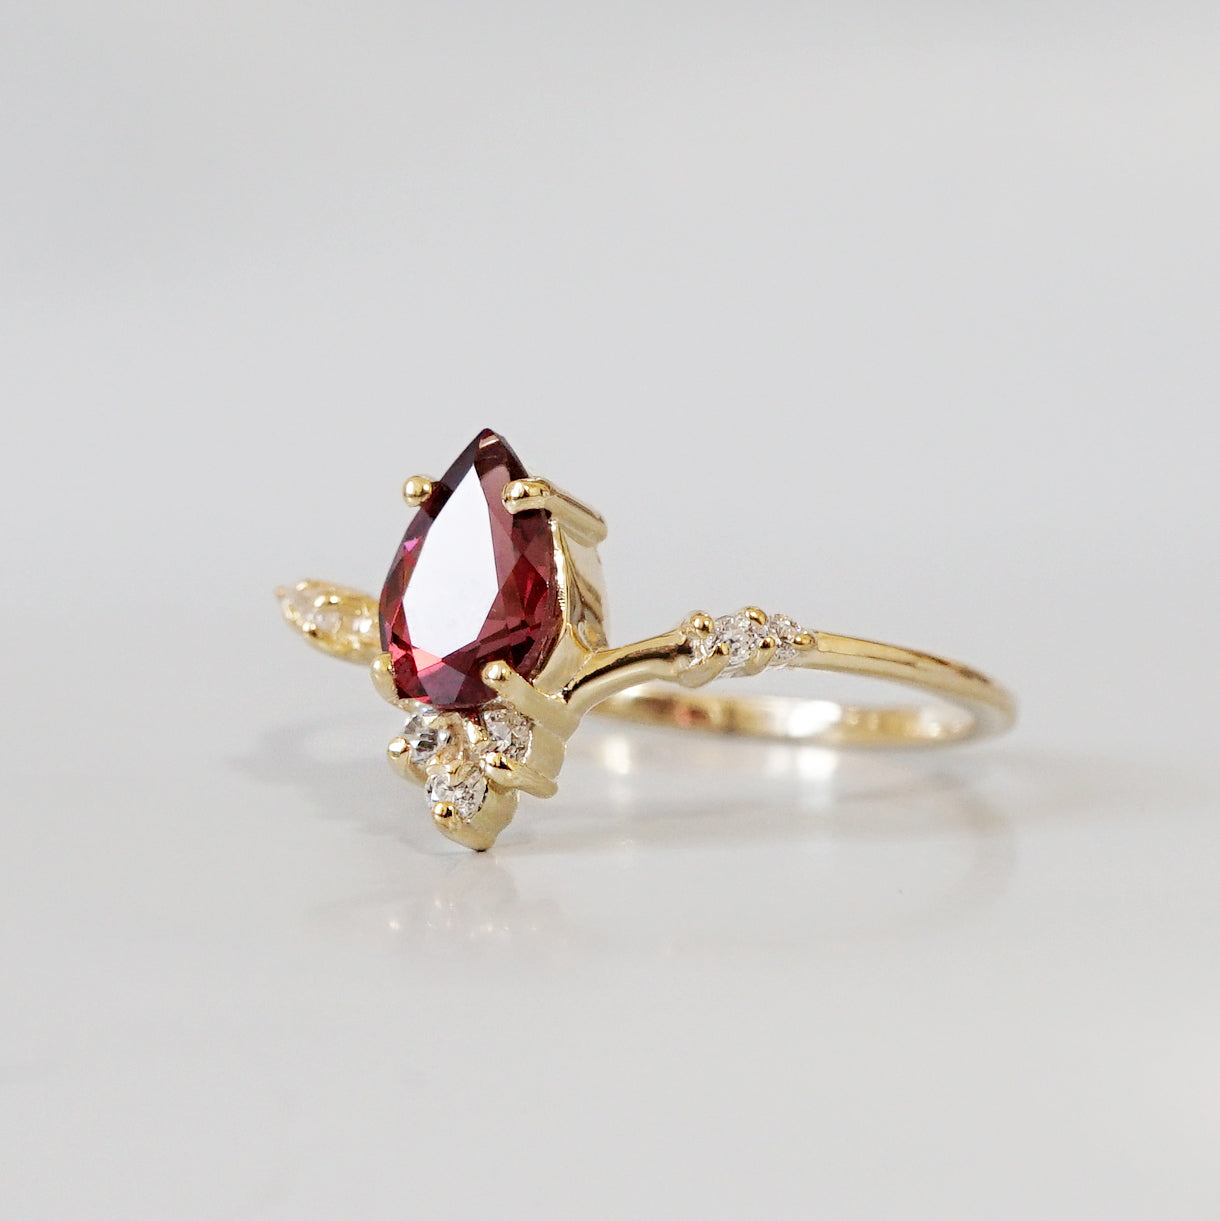 Garnet Blossom Ring - Tippy Taste Jewelry